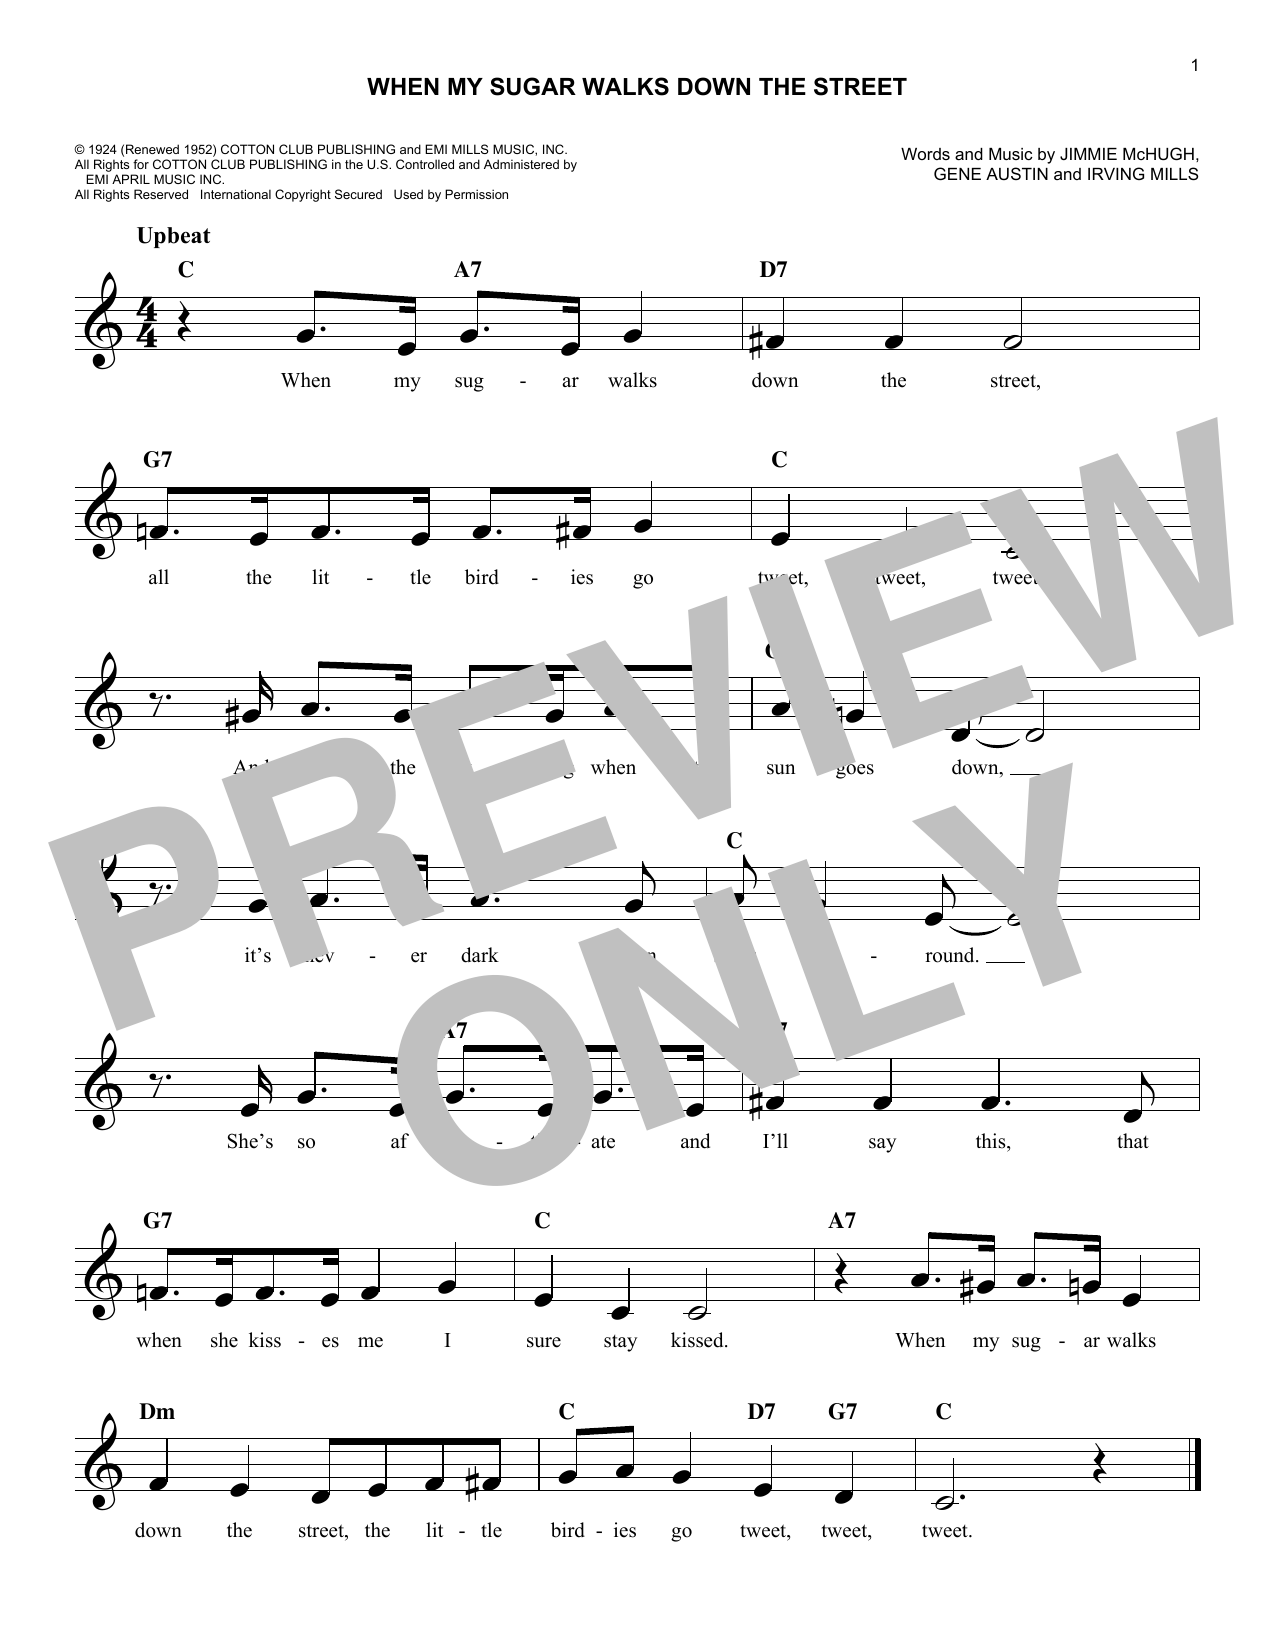 Gene Austin When My Sugar Walks Down The Street sheet music notes and chords. Download Printable PDF.